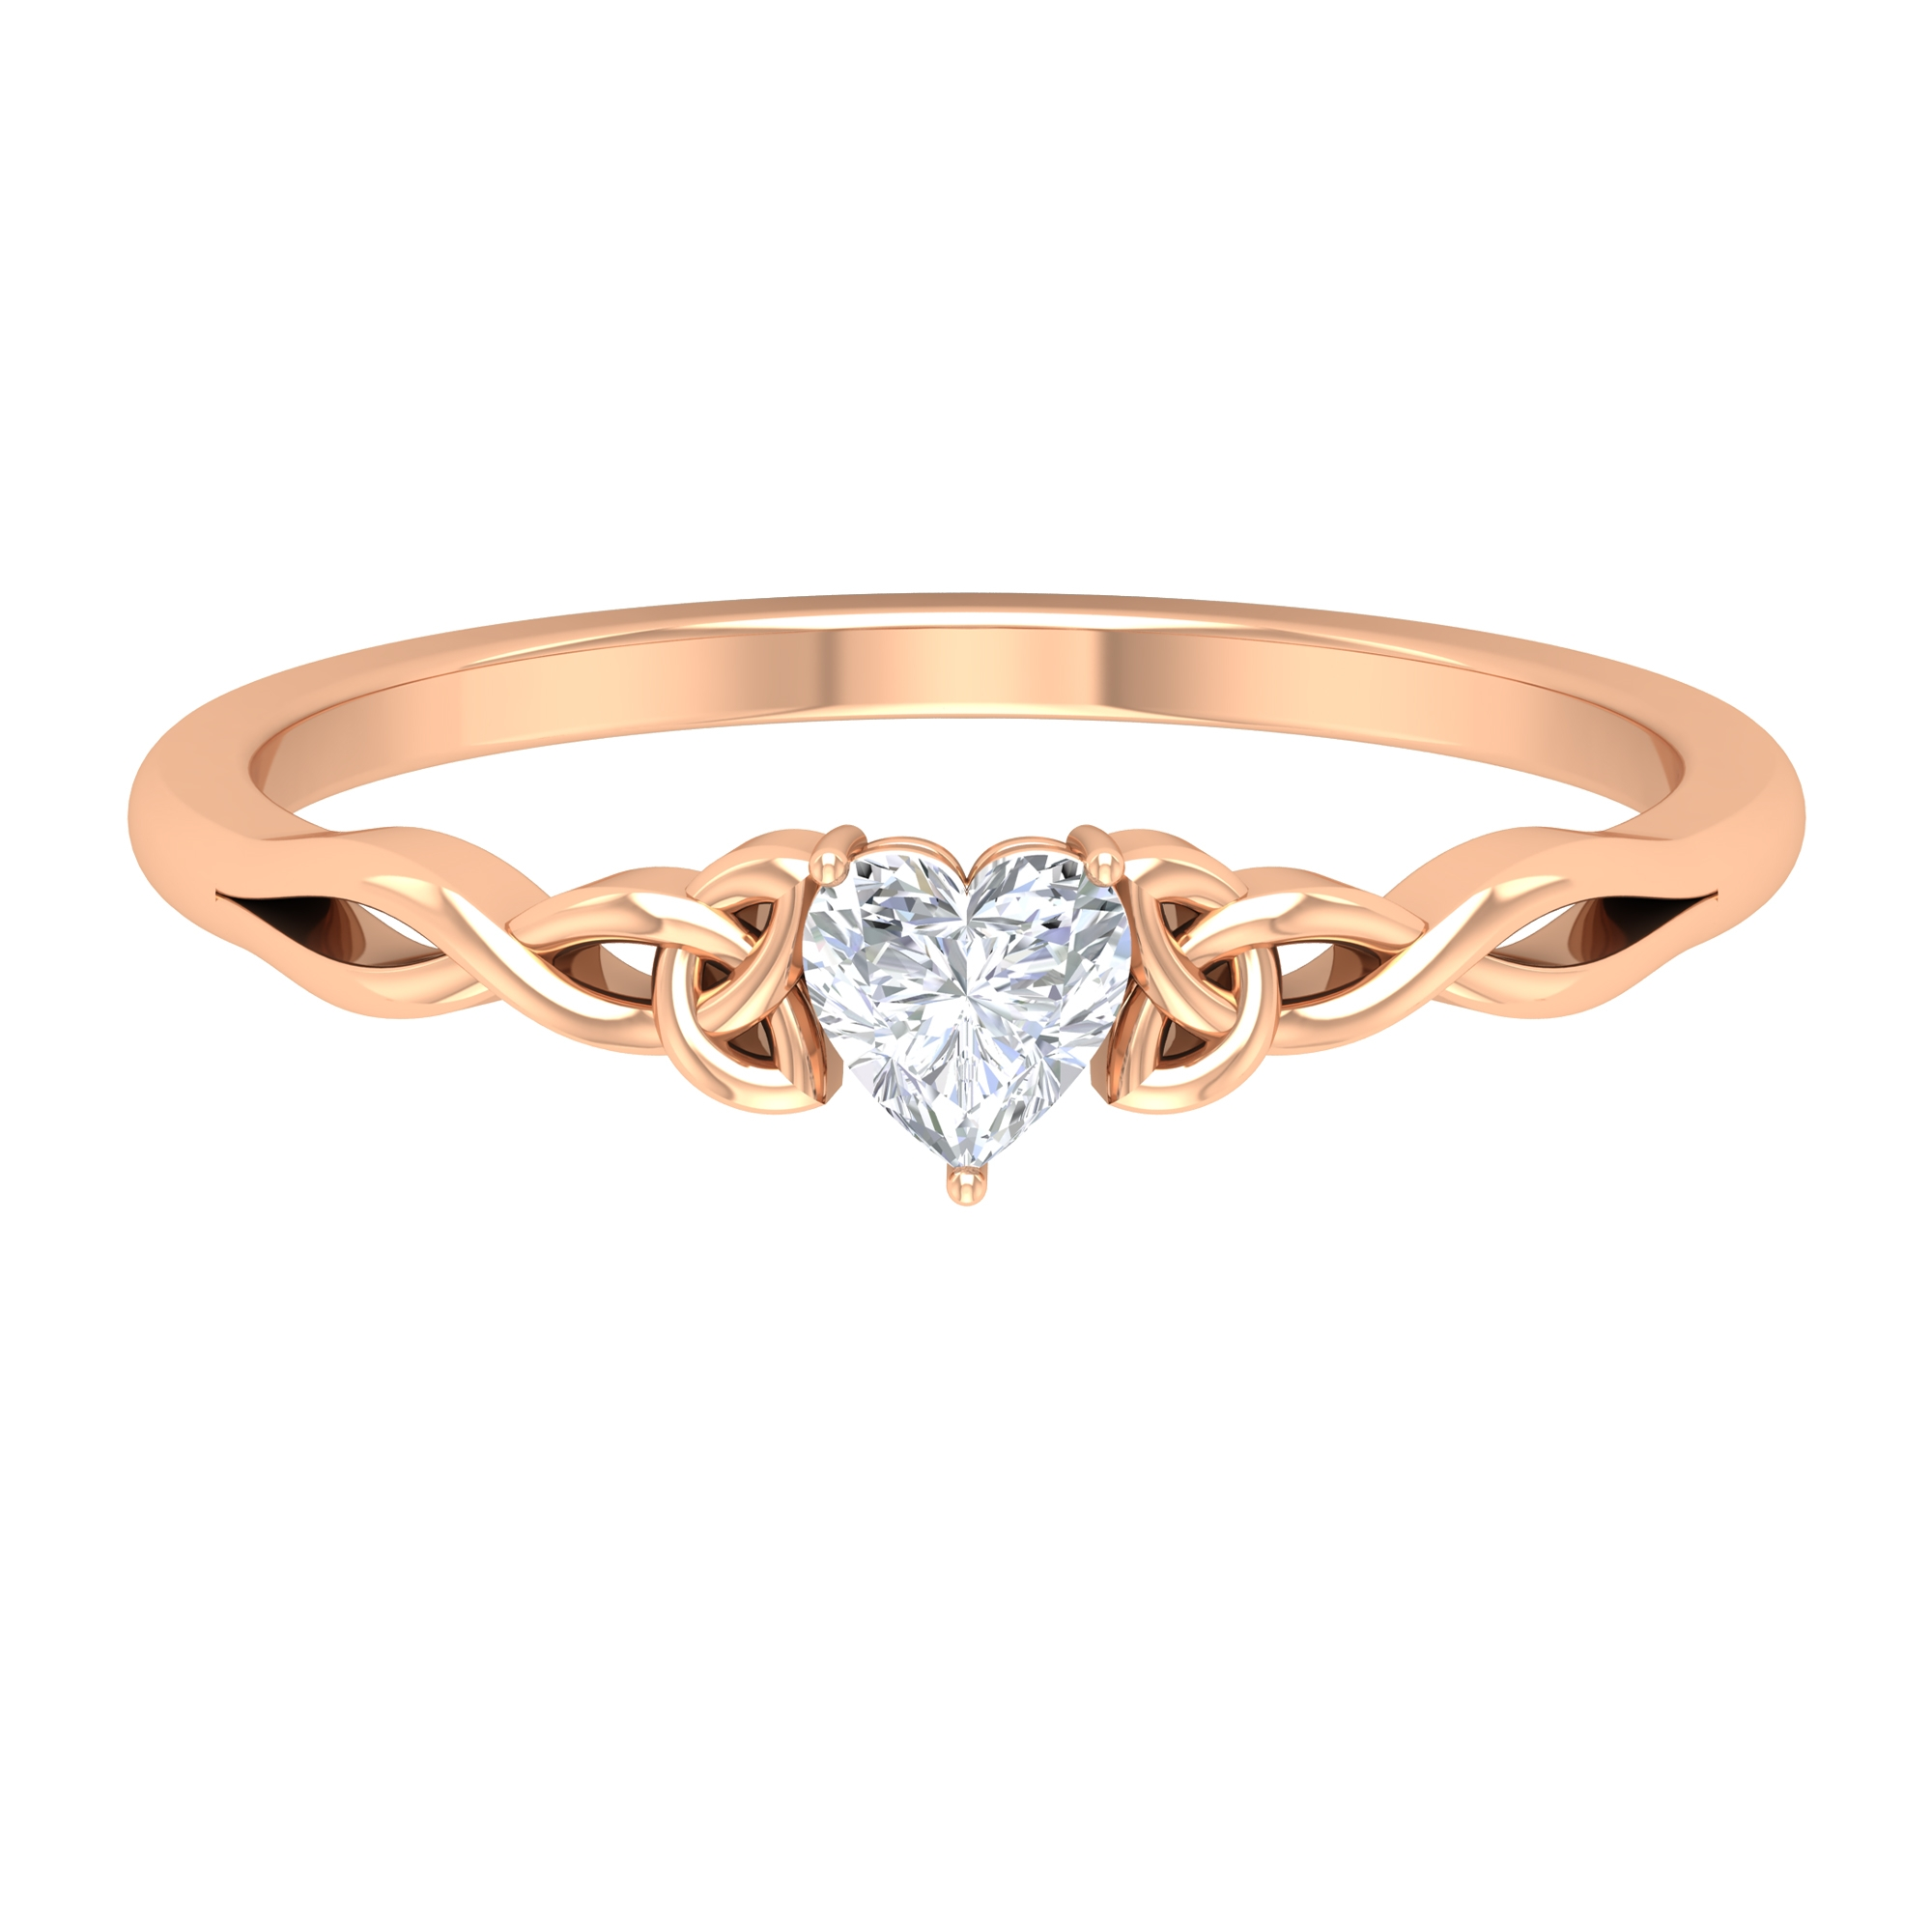 Three Prong Set 4 MM Heart Diamond Solitaire Ring with Celtic Style